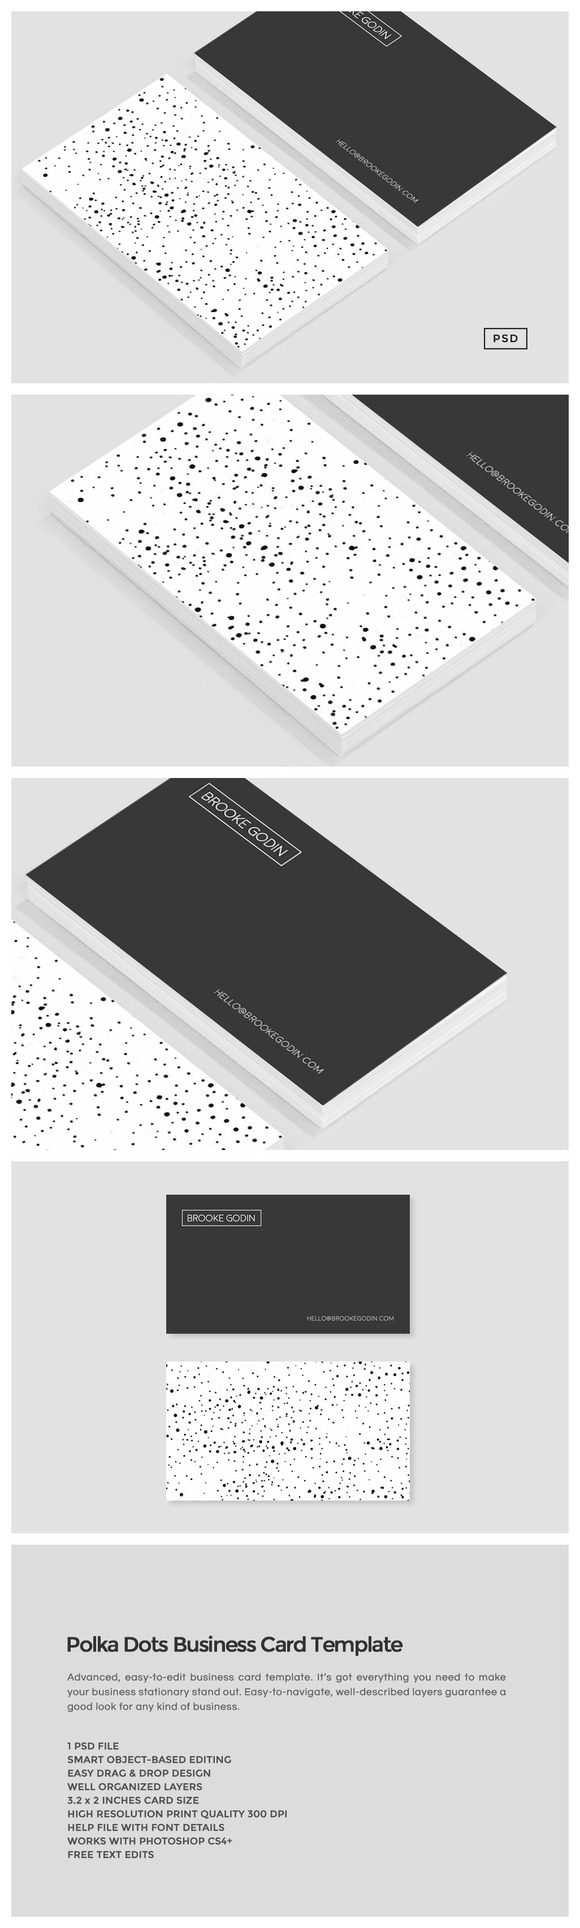 Polka dots business card template this double sided business card polka dots business card template this double sided business card design has a beautiful random reheart Gallery